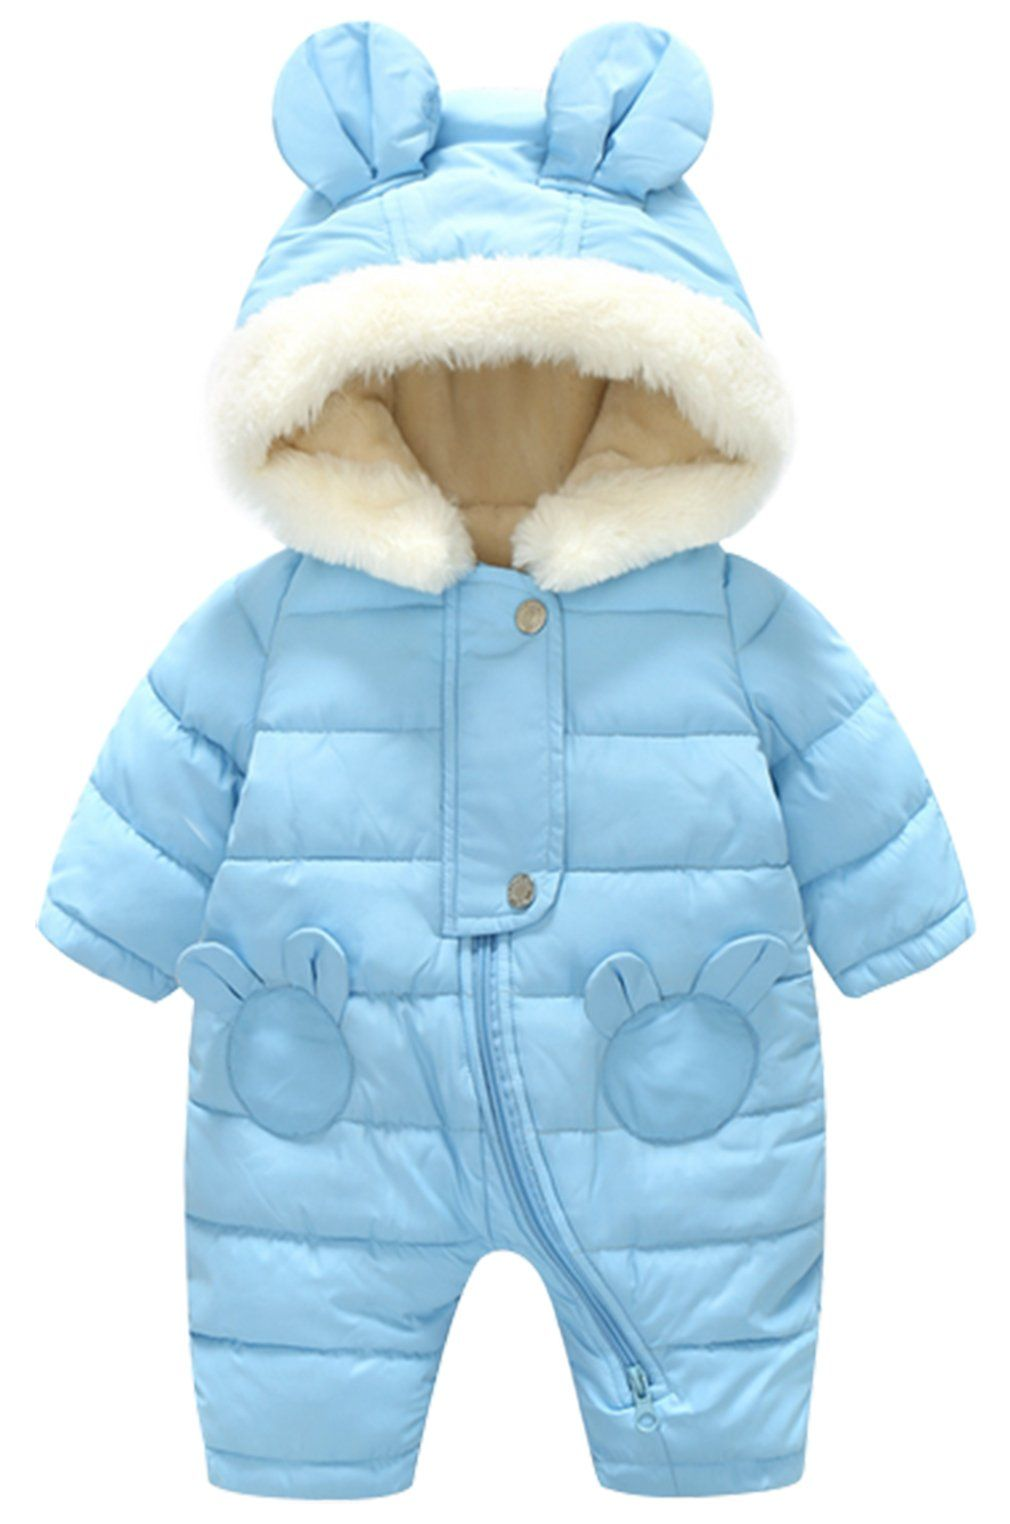 6705c26c19e3 Newborn Baby Girls Thick Down Cartoon Bear Ear Romper Snowsuit ...